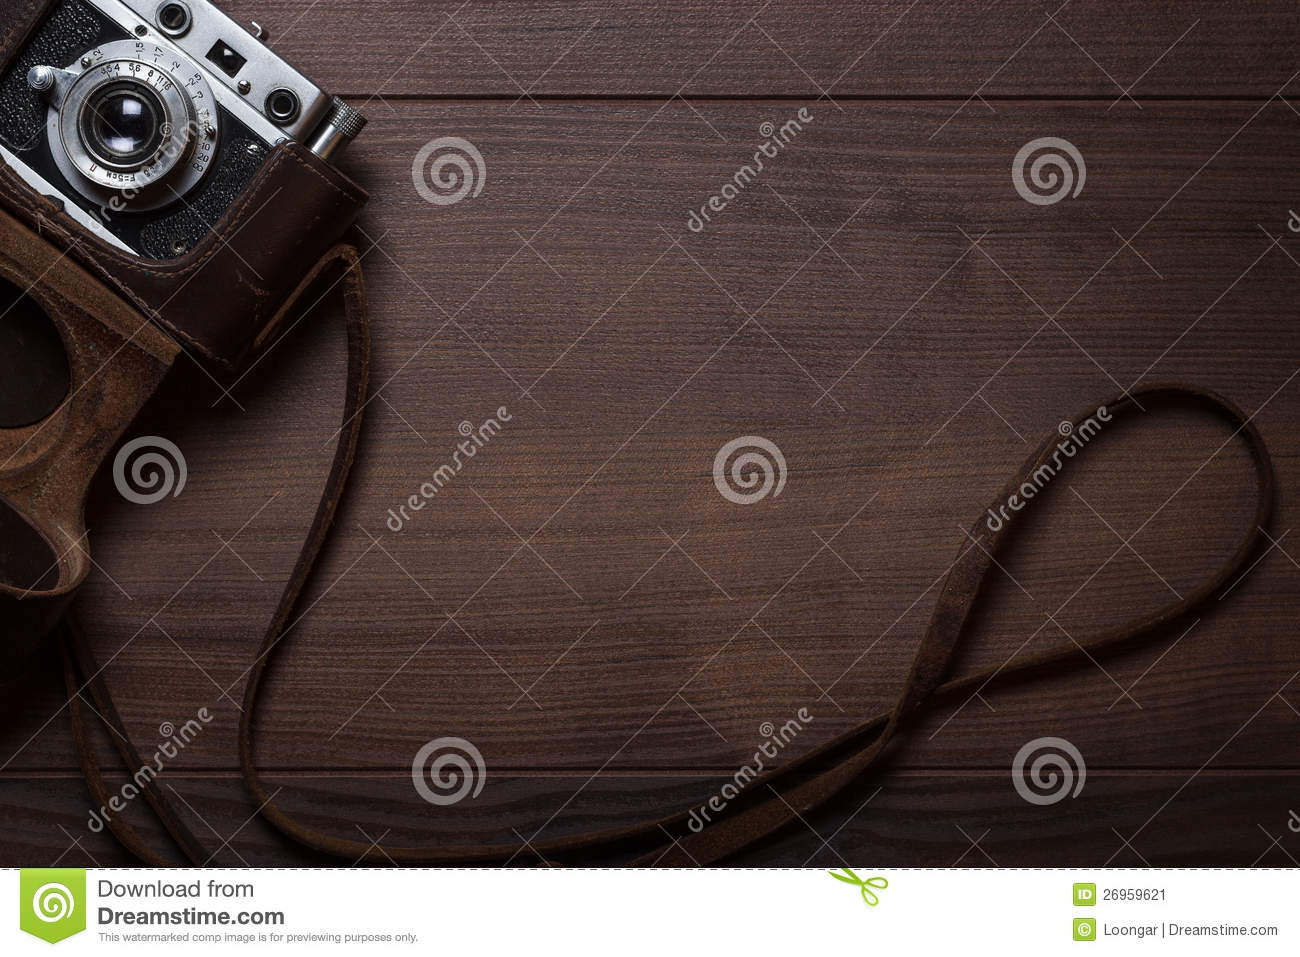 Wooden background with retro still camera